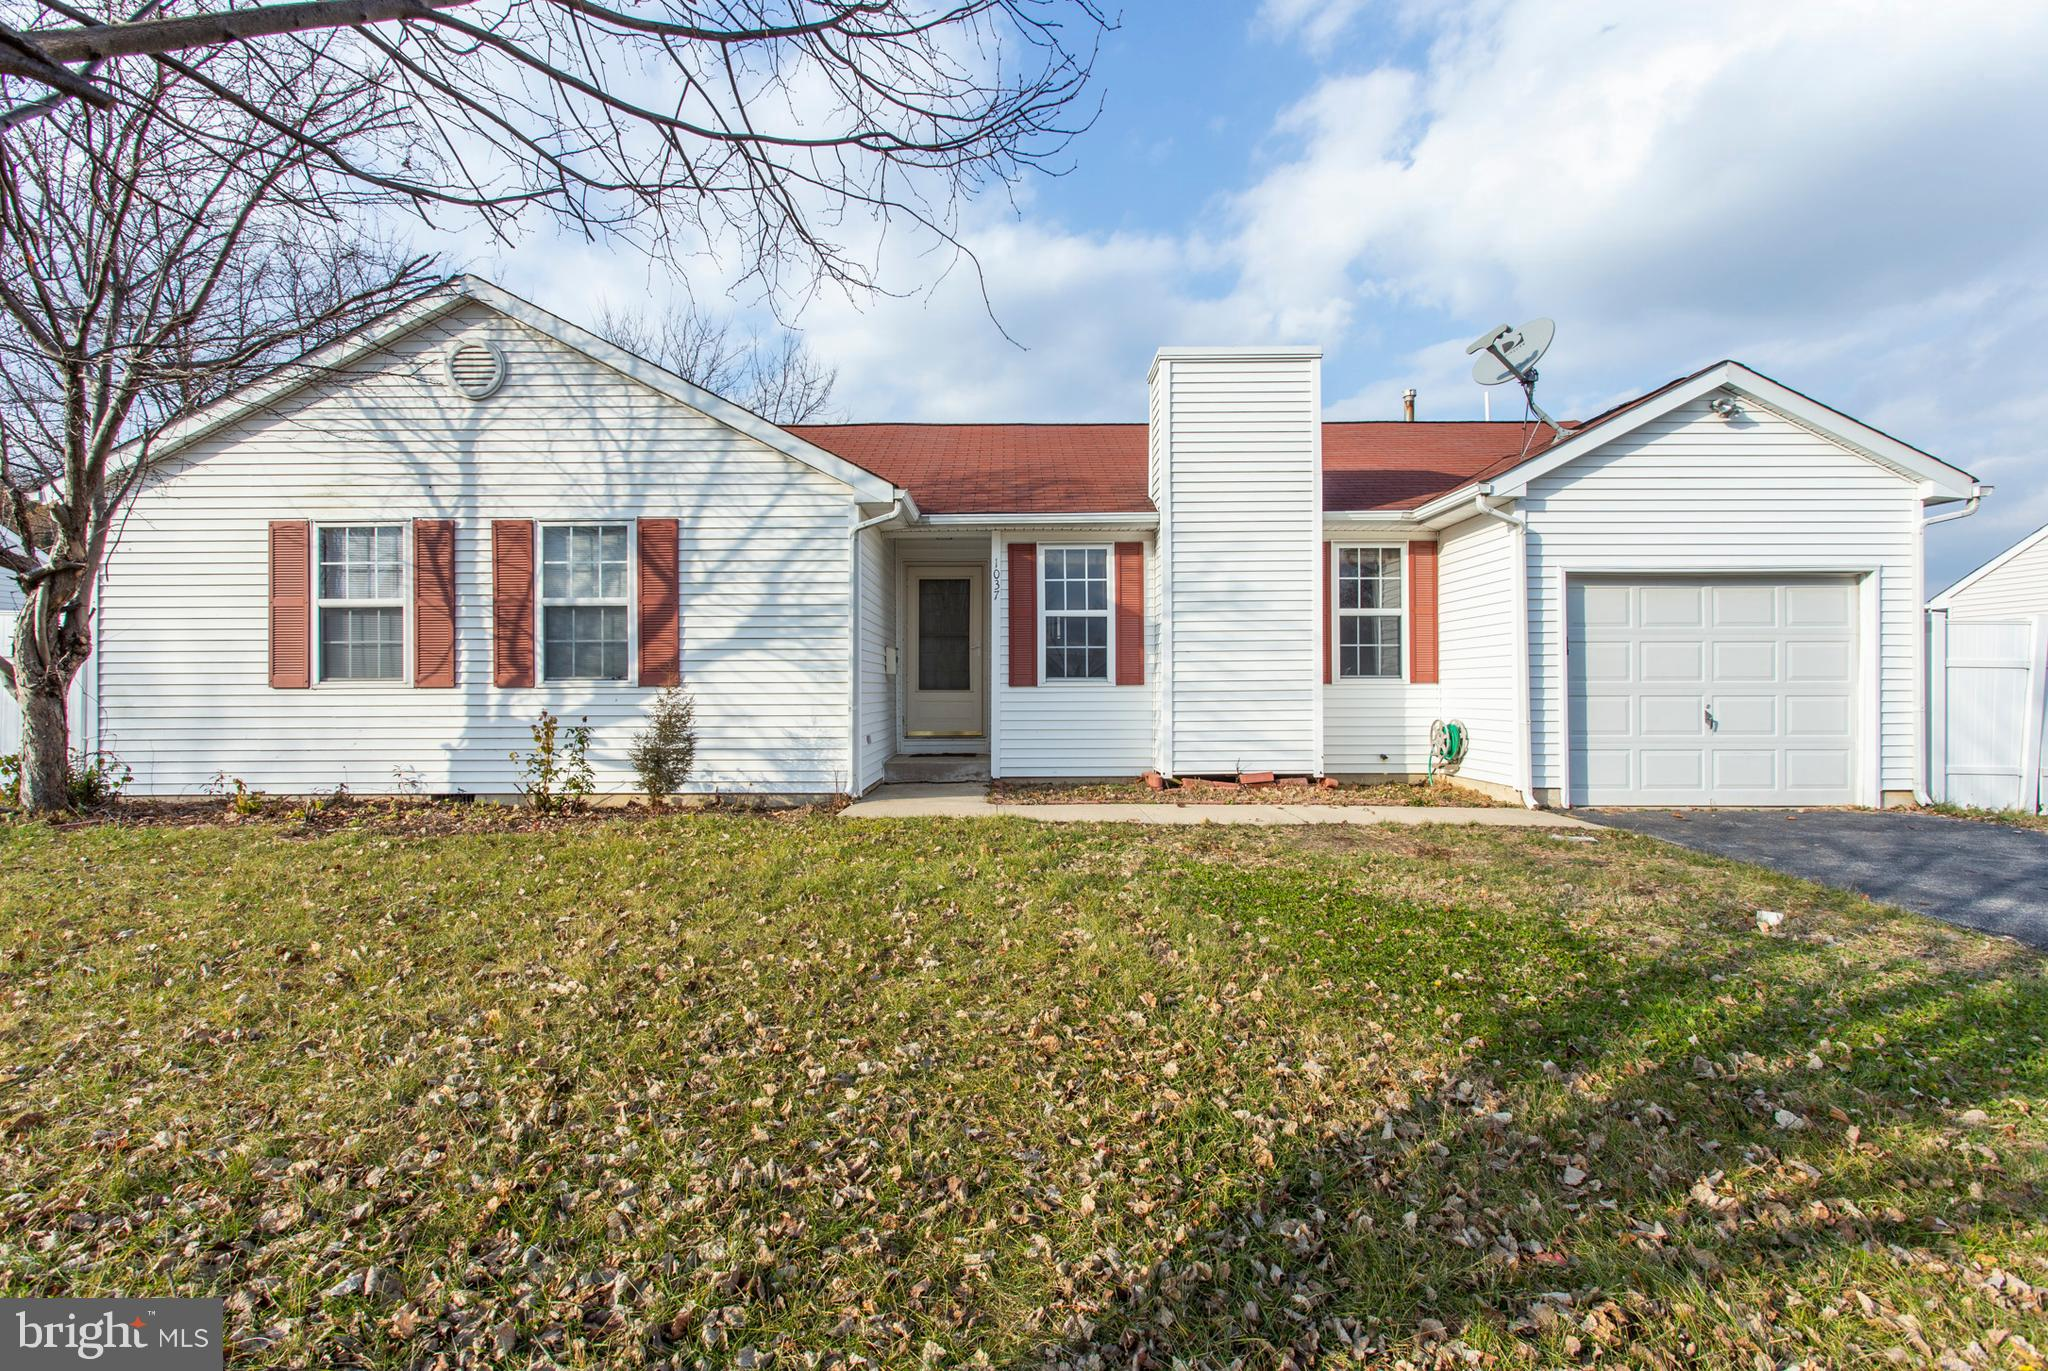 1037 LINDEN AVENUE, SHARON HILL, PA 19079